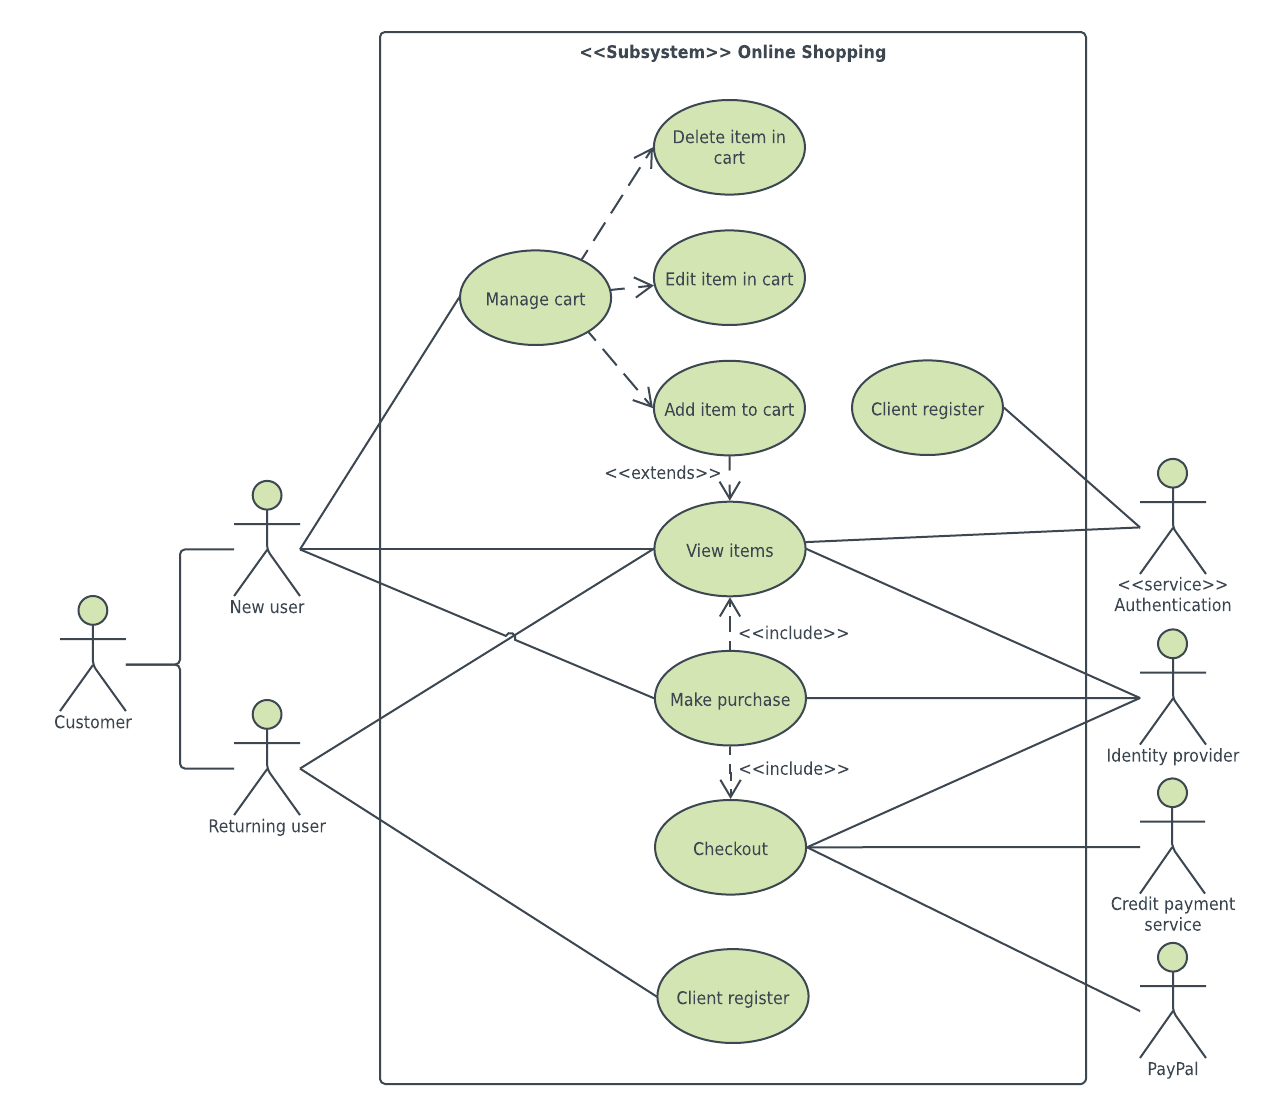 Uml Diagram Templates And Examples Lucidchart Blog Diagram Online Use Case Templates